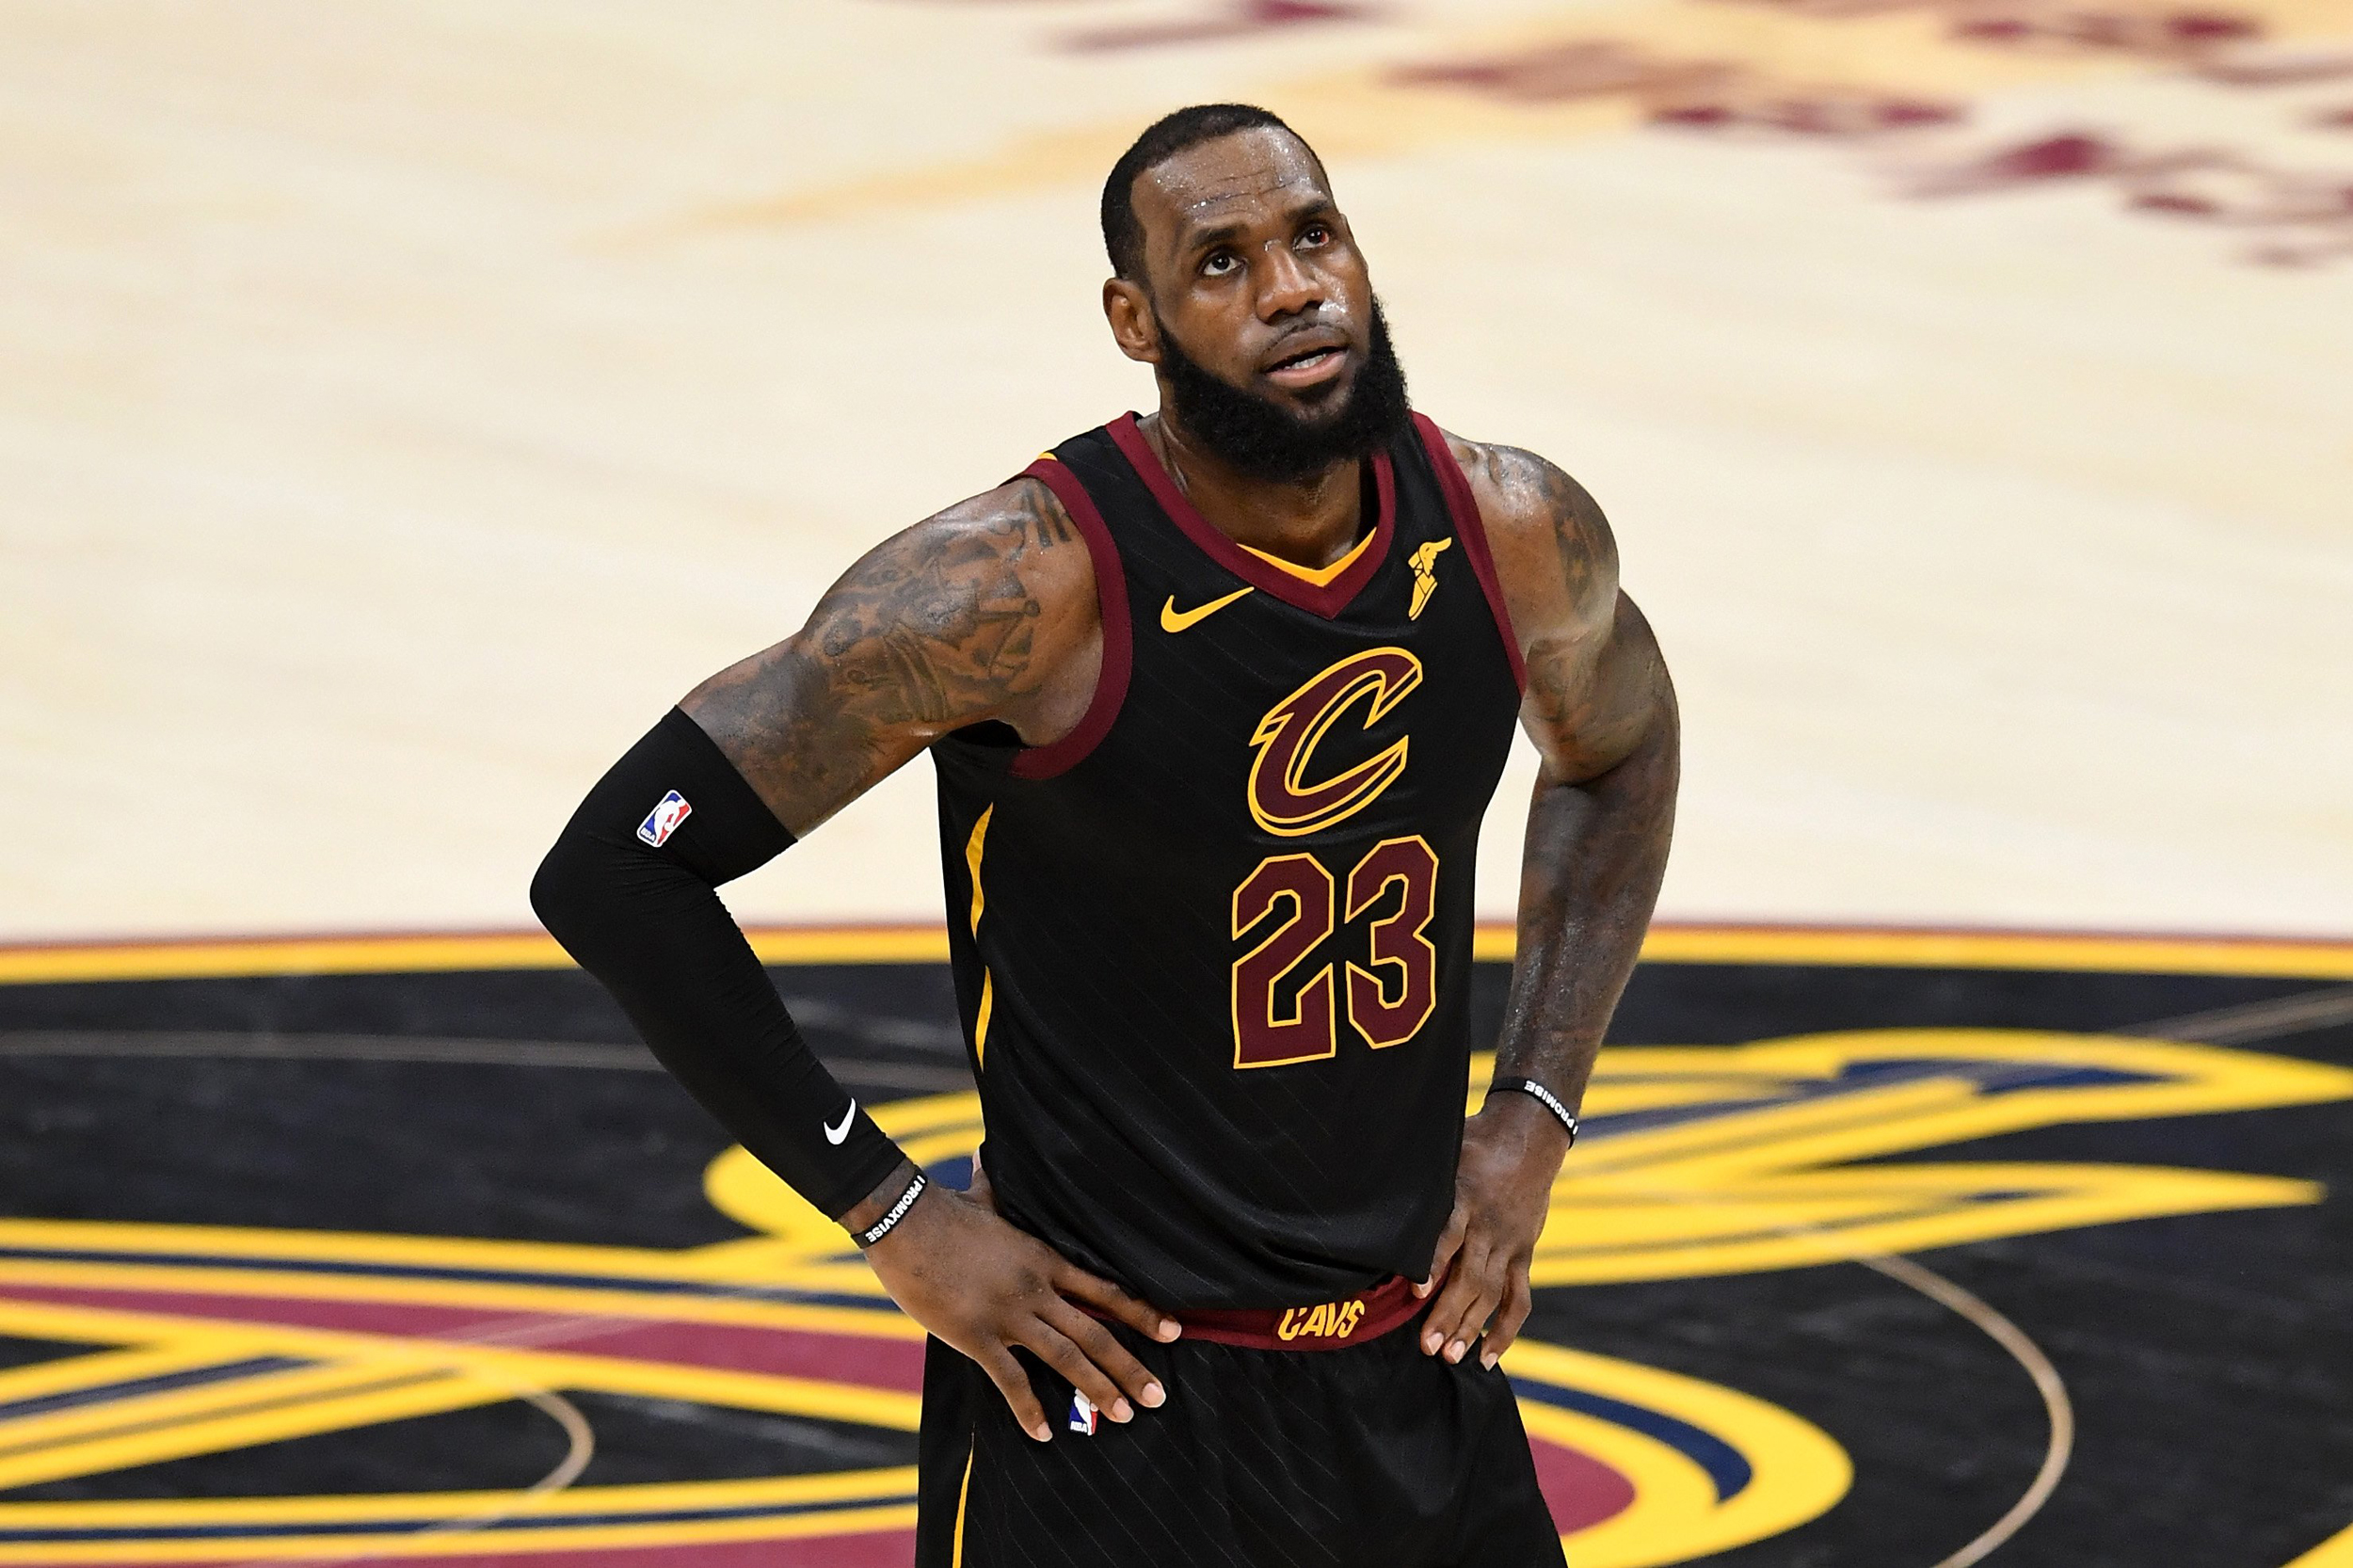 788517c7b85d Lebron James  decision to leave the Cavaliers for the Lakers isn t  surprising — but his 2010 move changed the NBA forever